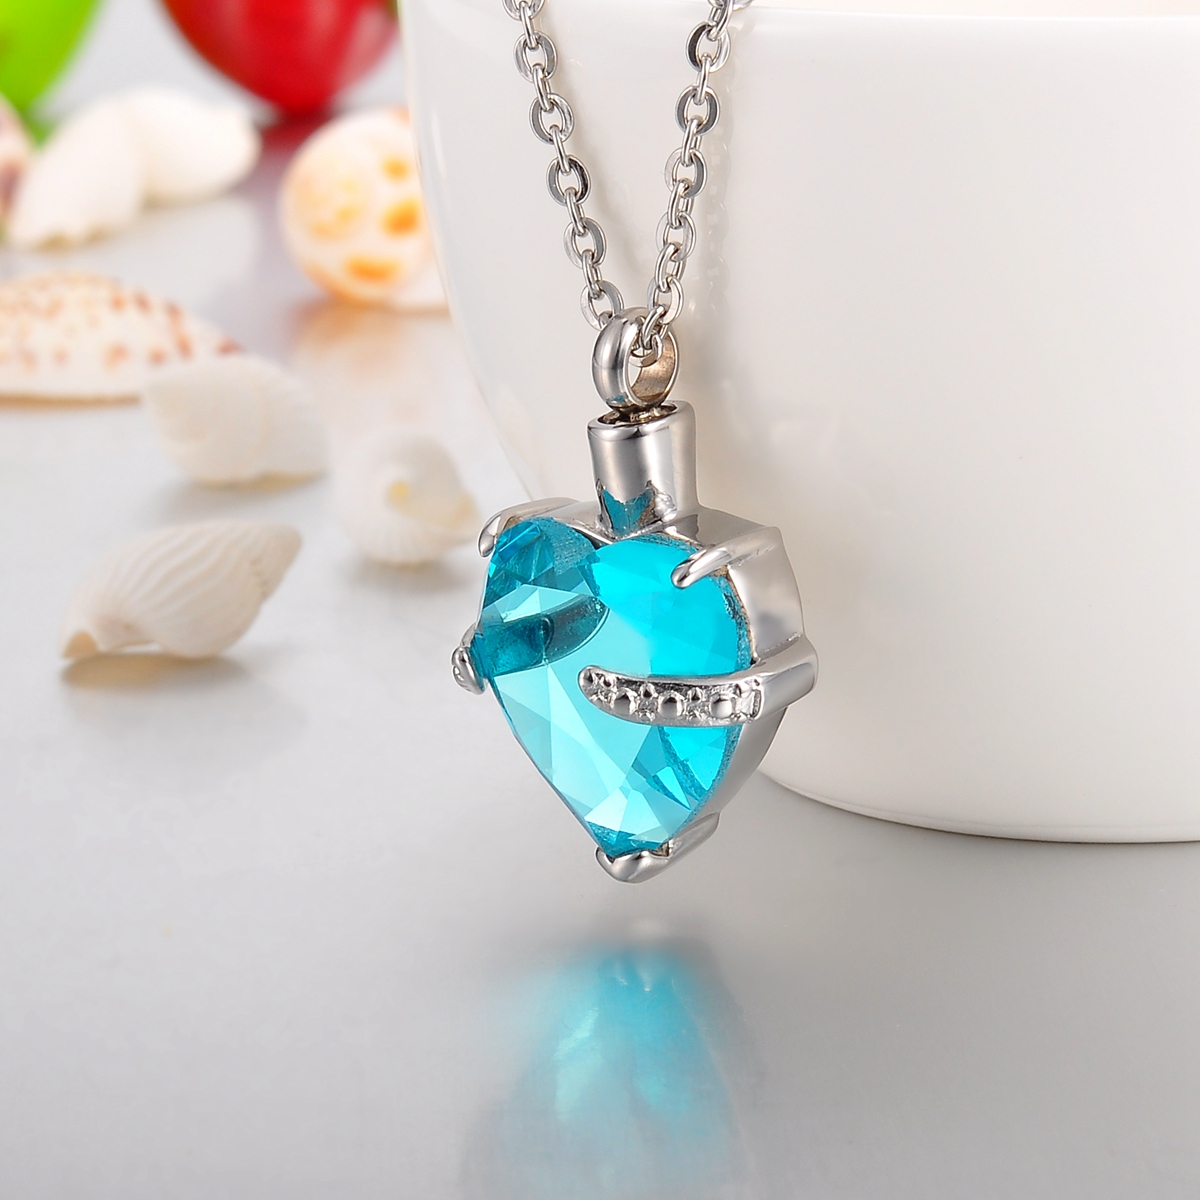 NEW Aquamarine Hold My Heart Cremation Jewelry Keepsake Ash Urn Holder Necklace